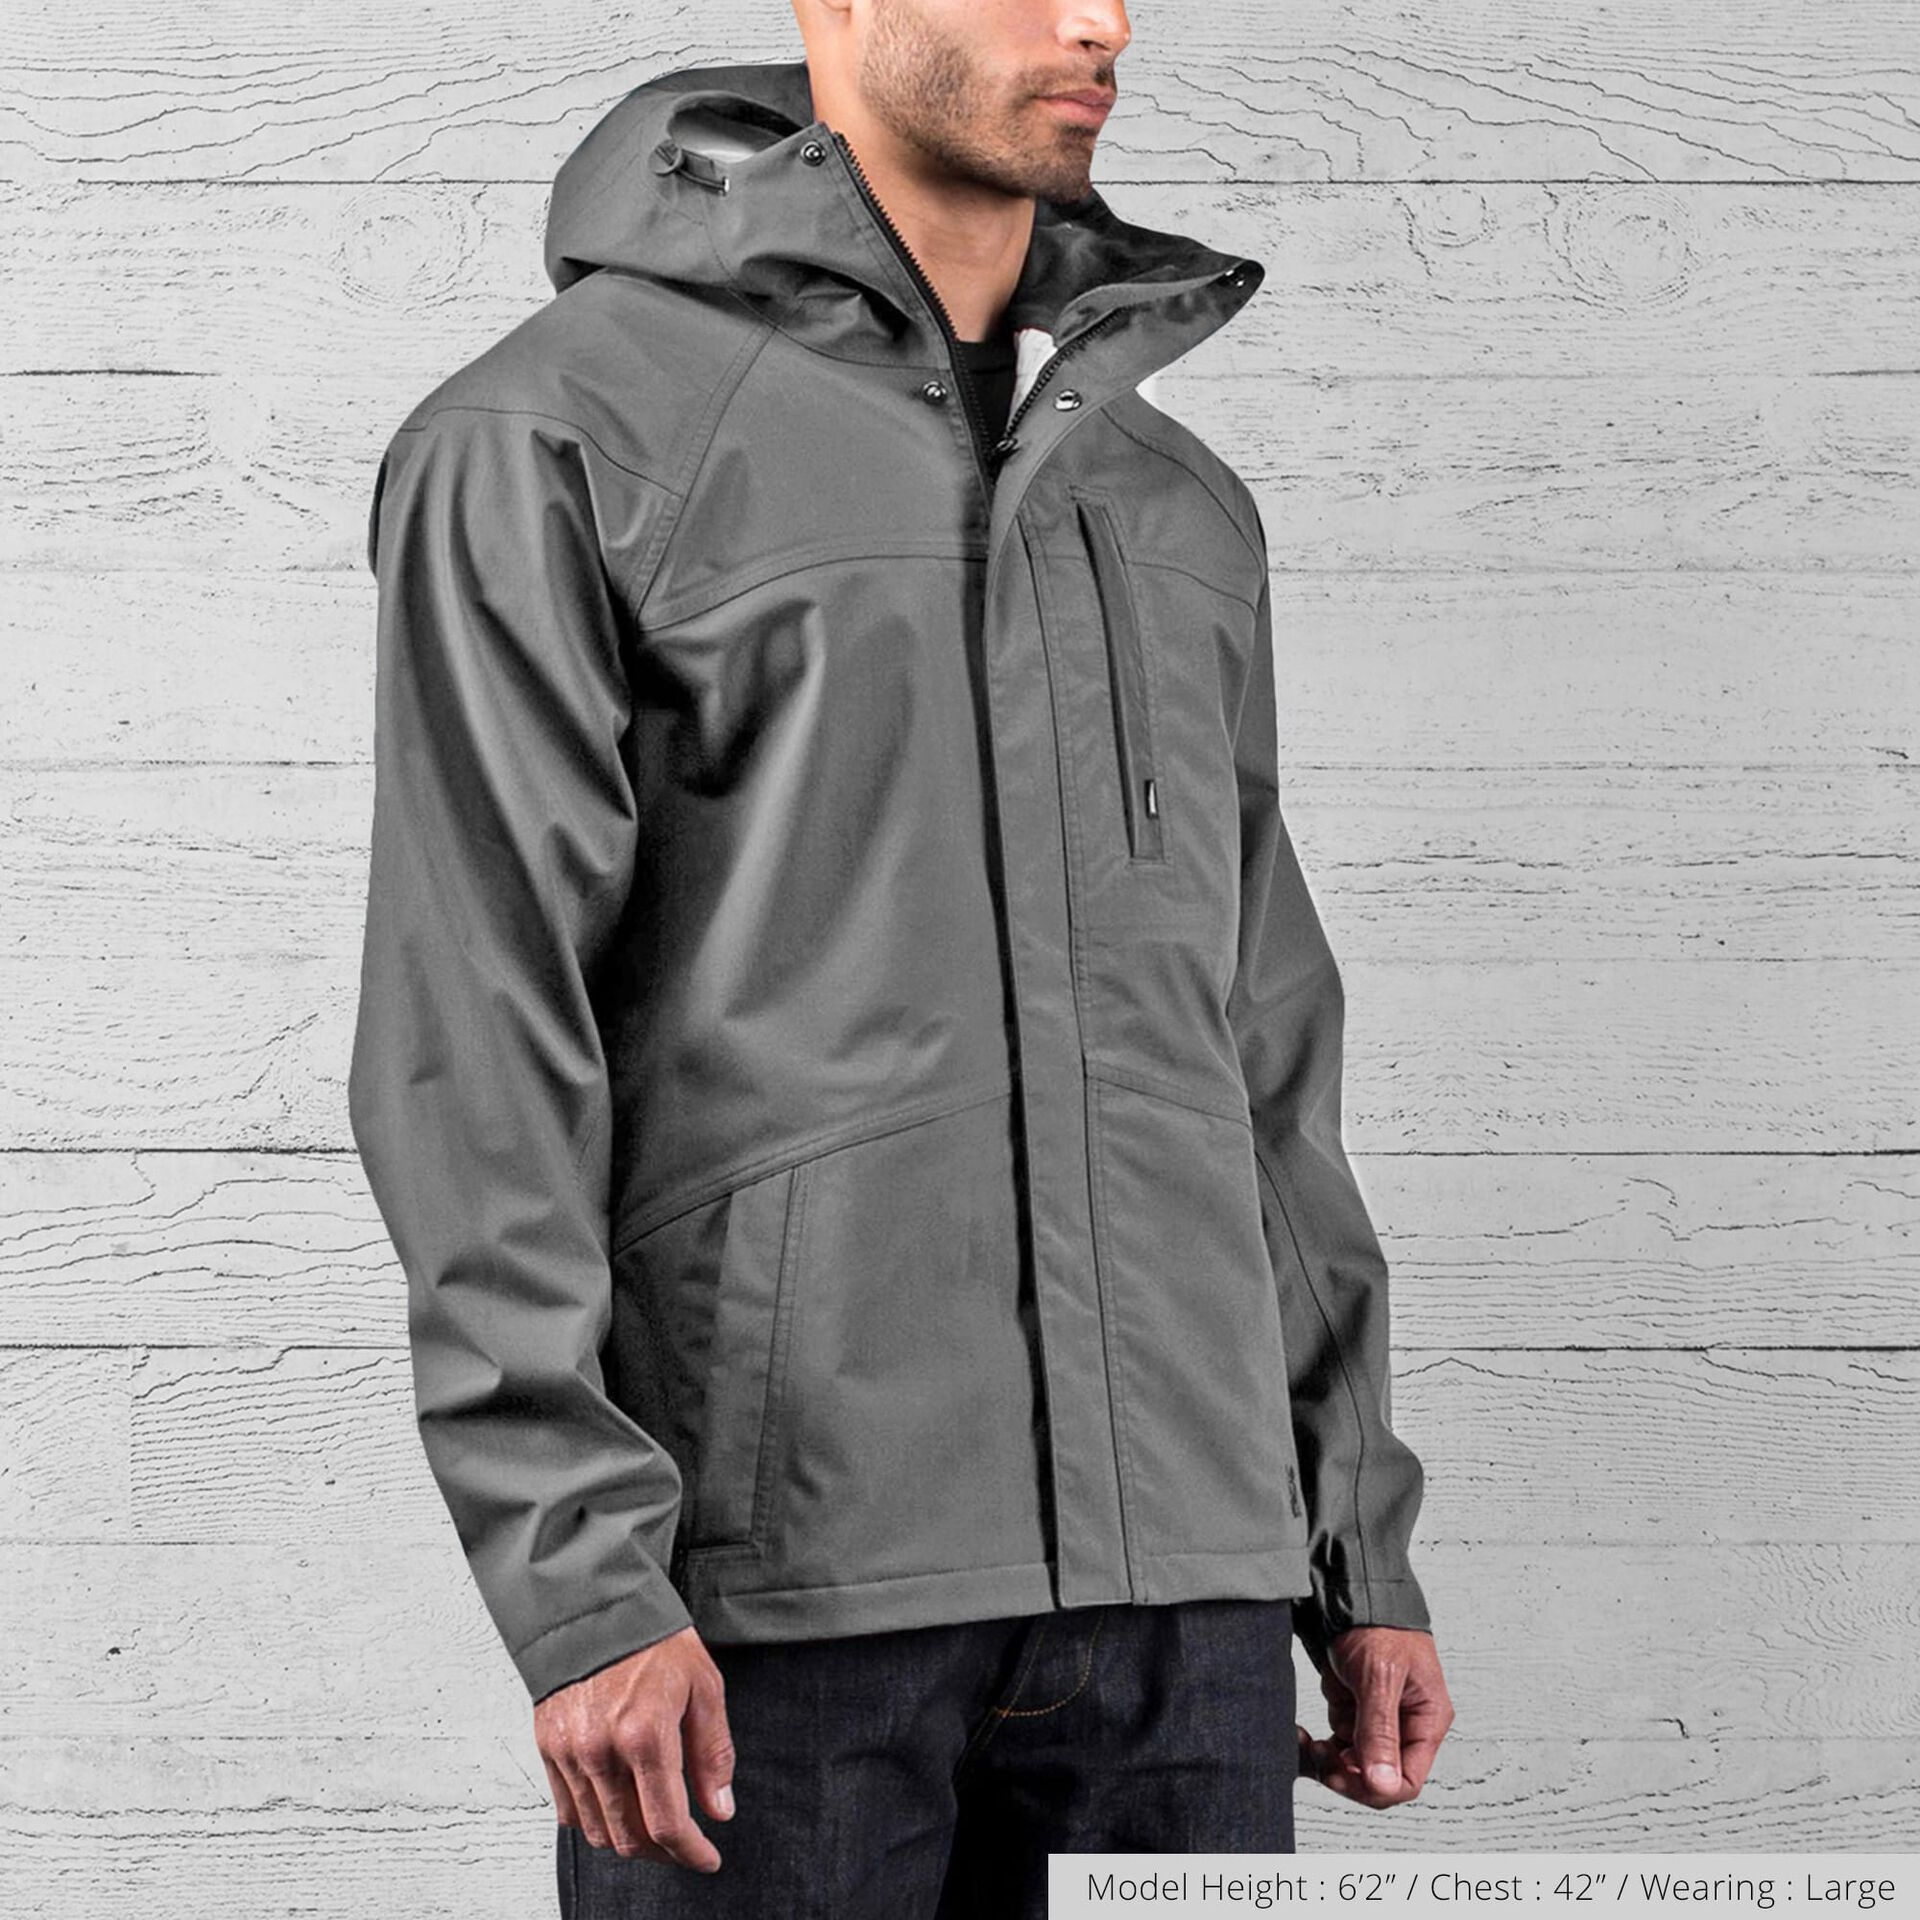 Storm Cobra 2.0 Jacket in Gargoyle Grey - wide view.